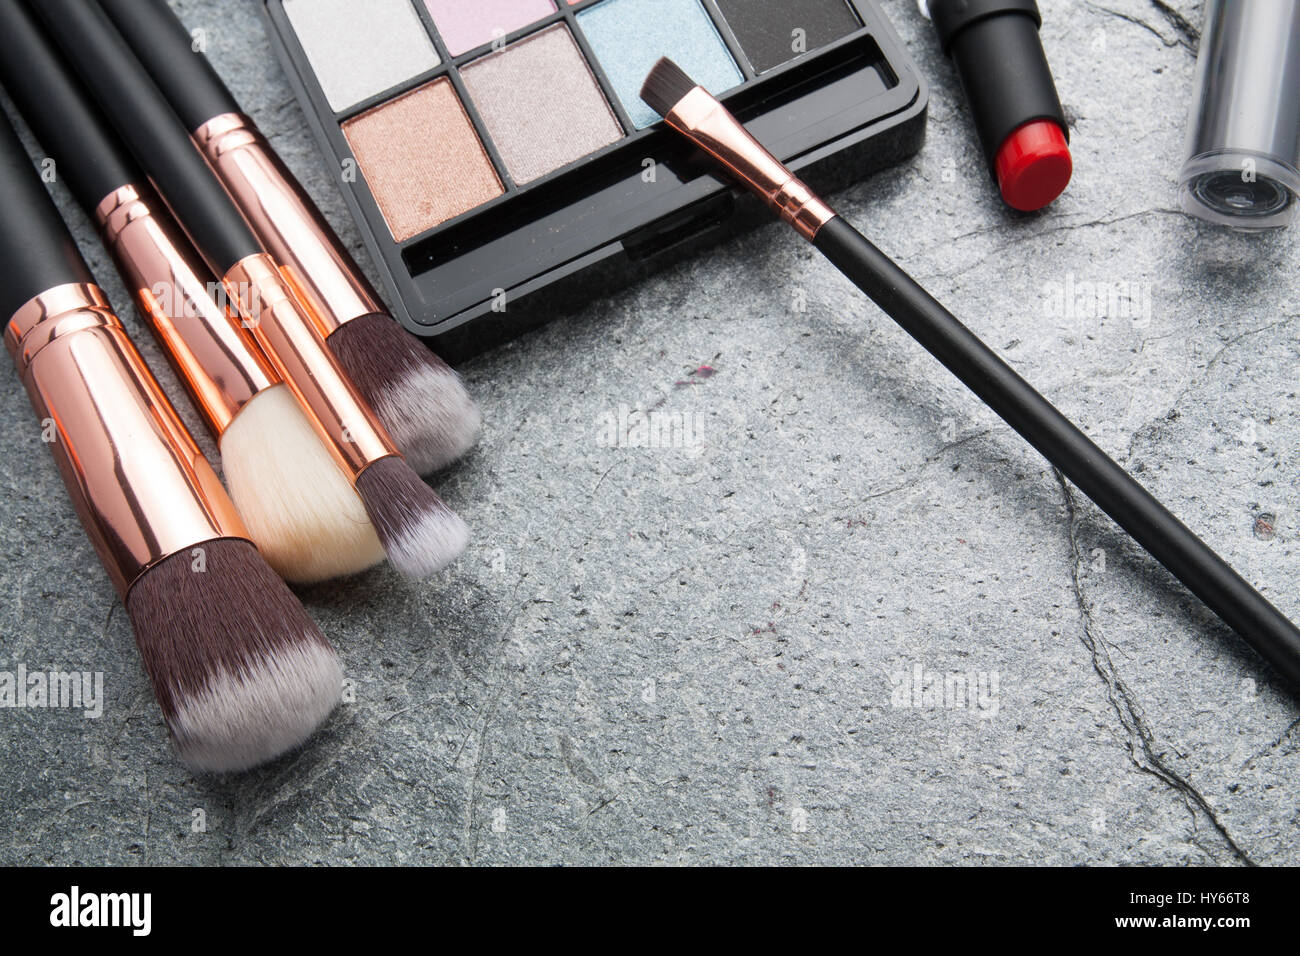 various makeup products on dark background with copyspace Stock     various makeup products on dark background with copyspace